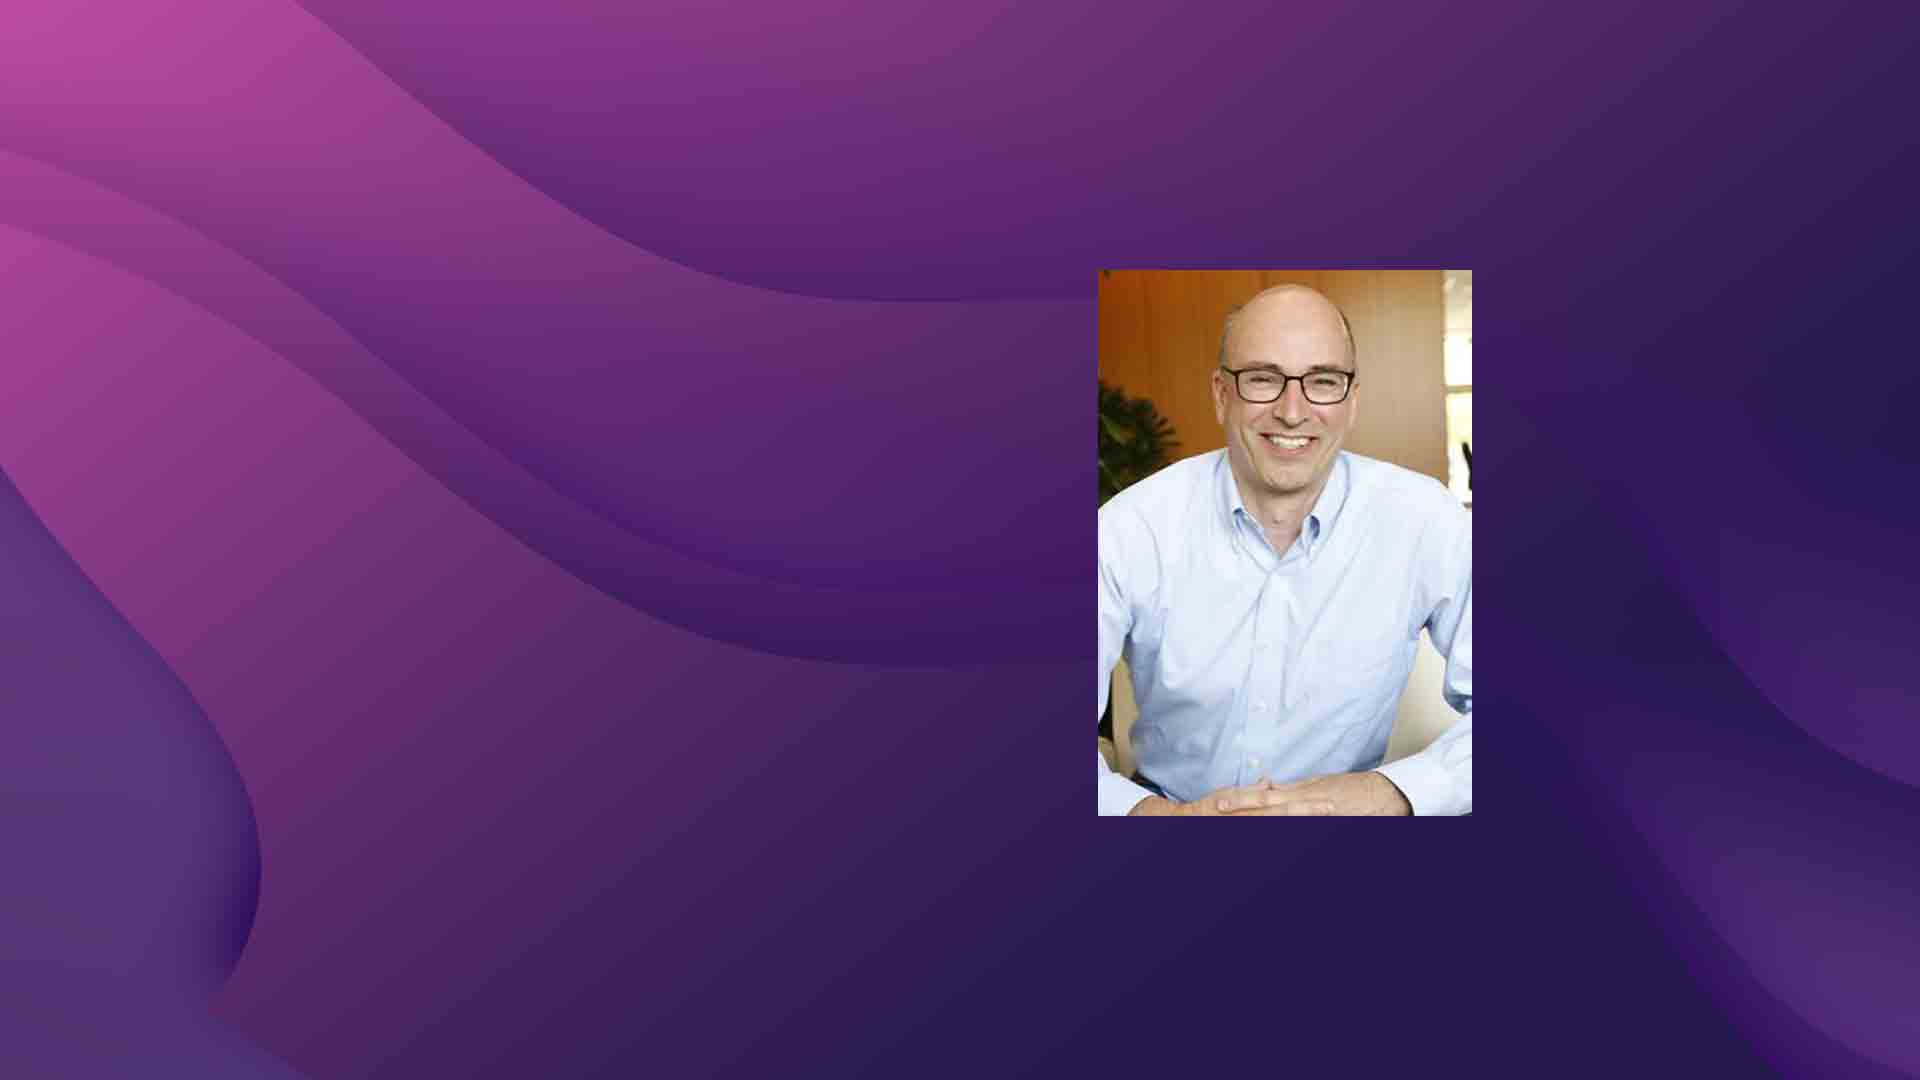 832: Citrix – From Digital Workspaces to Entertainment Experiences